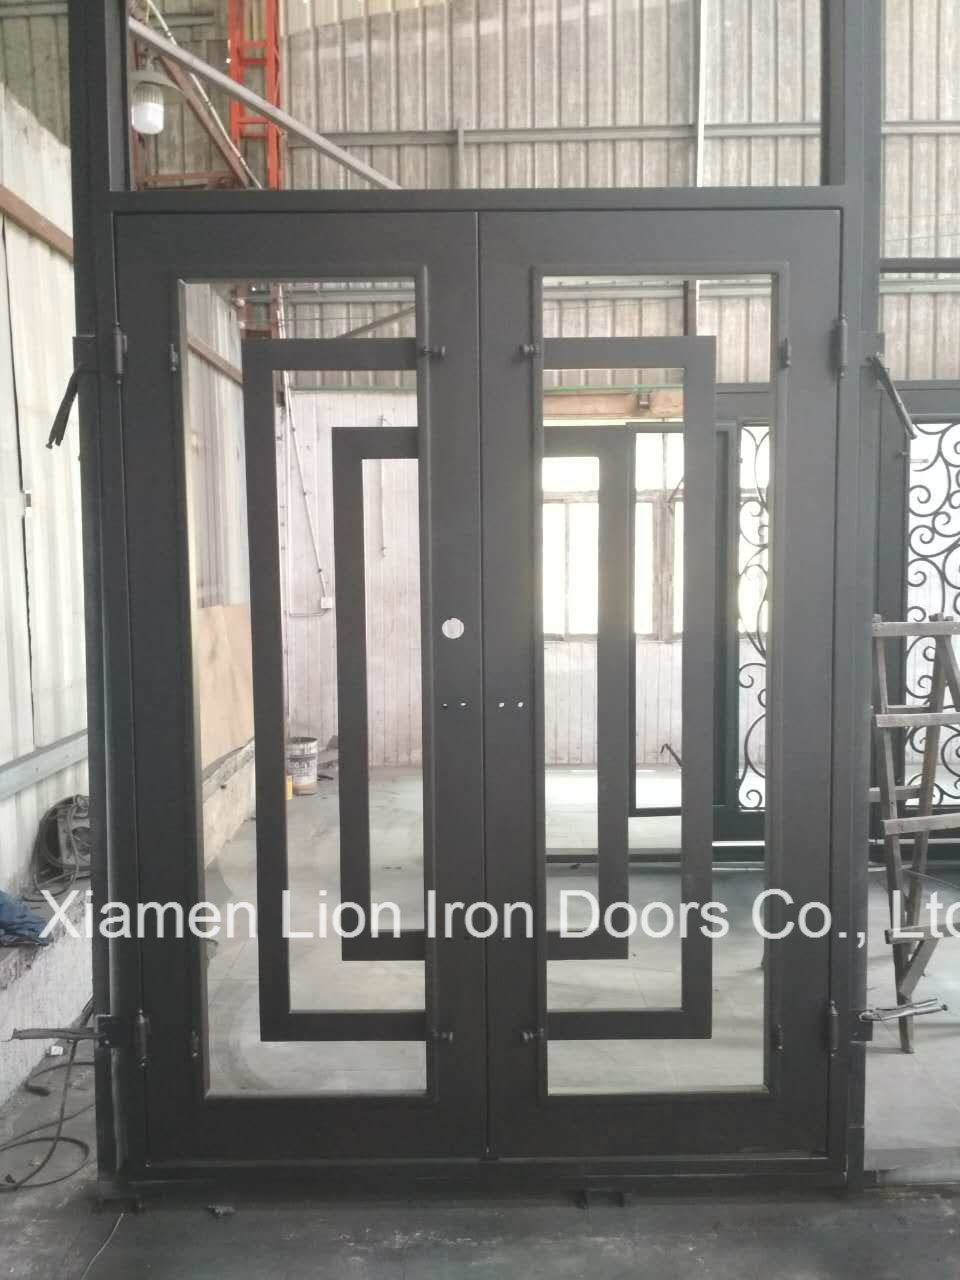 China Metal Security Door With Iron Gates Models New Design Iron